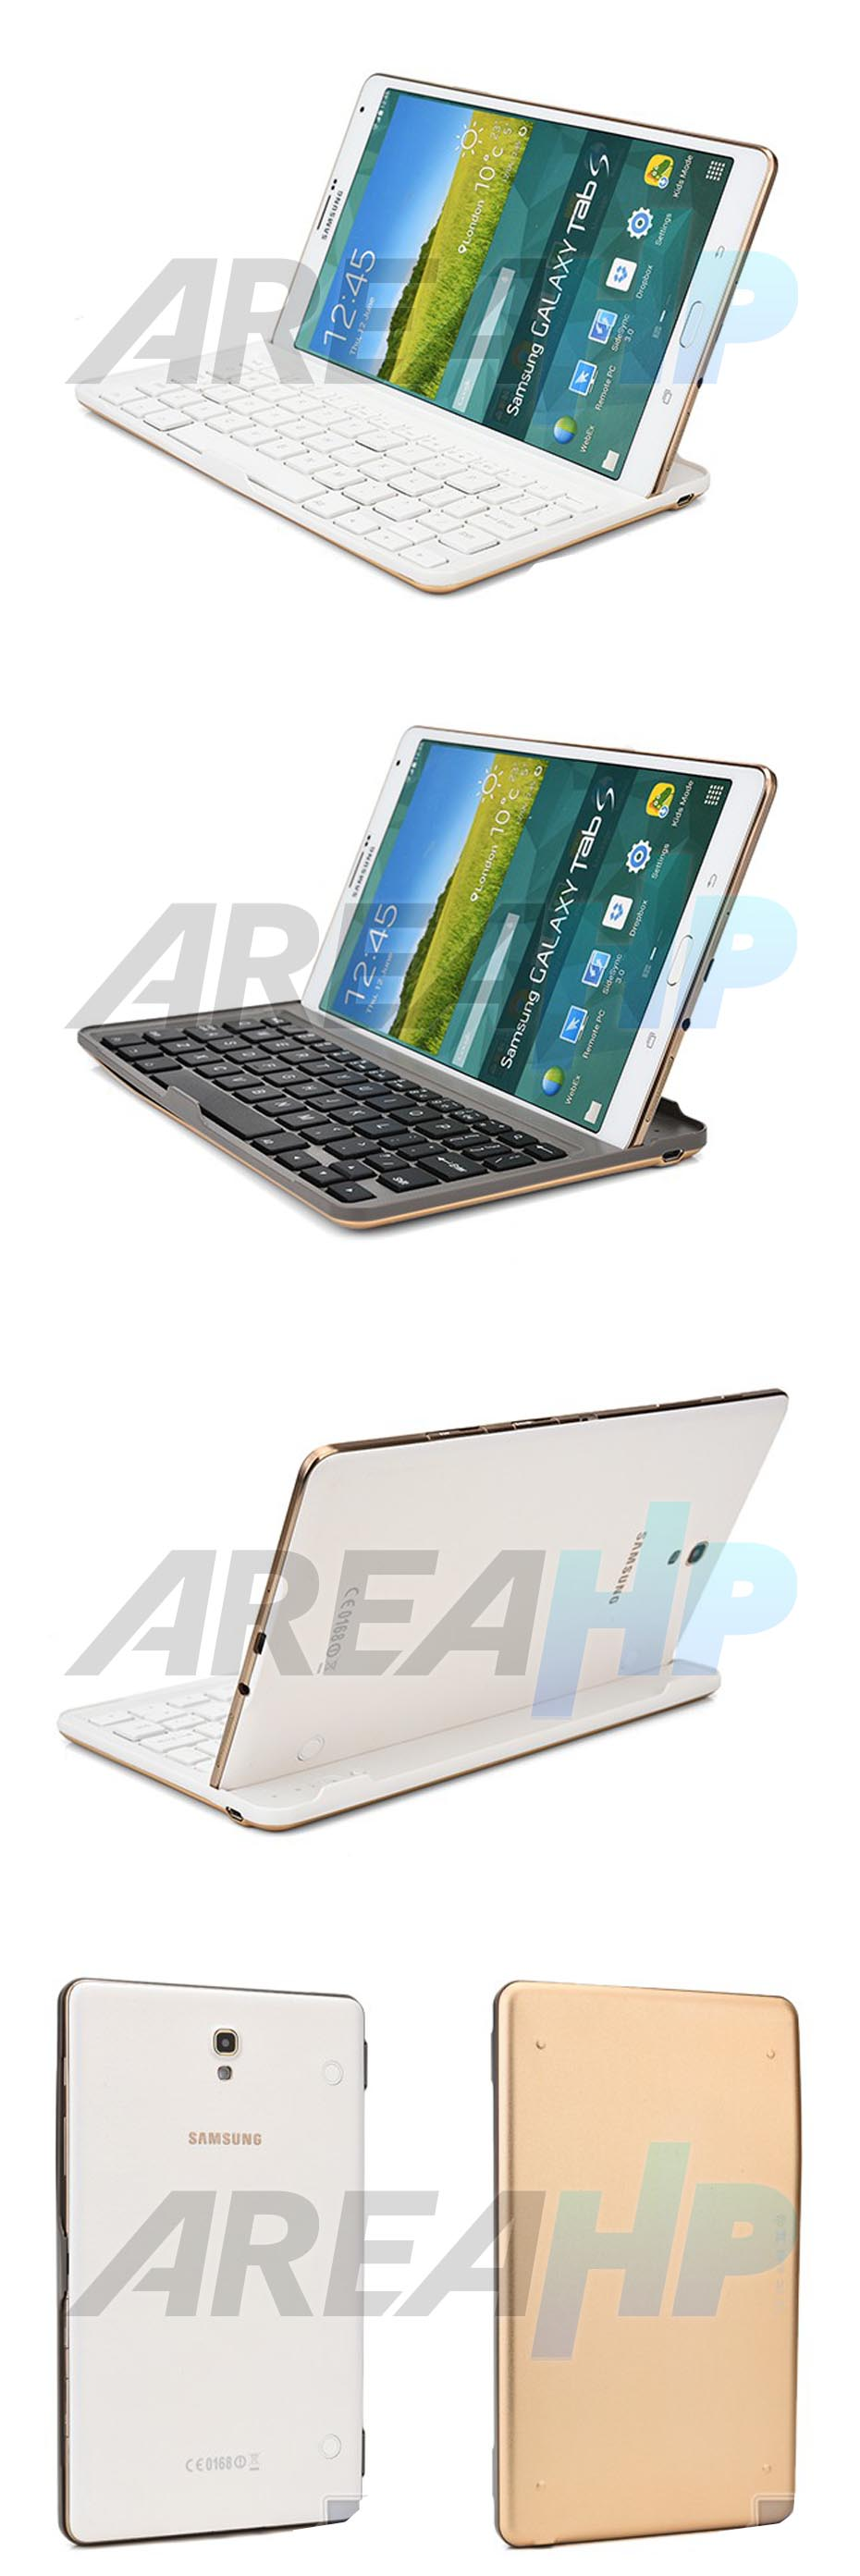 Ultra Slim Keyboard for Samsung Galaxy Tab S 8.4 T700 Overview